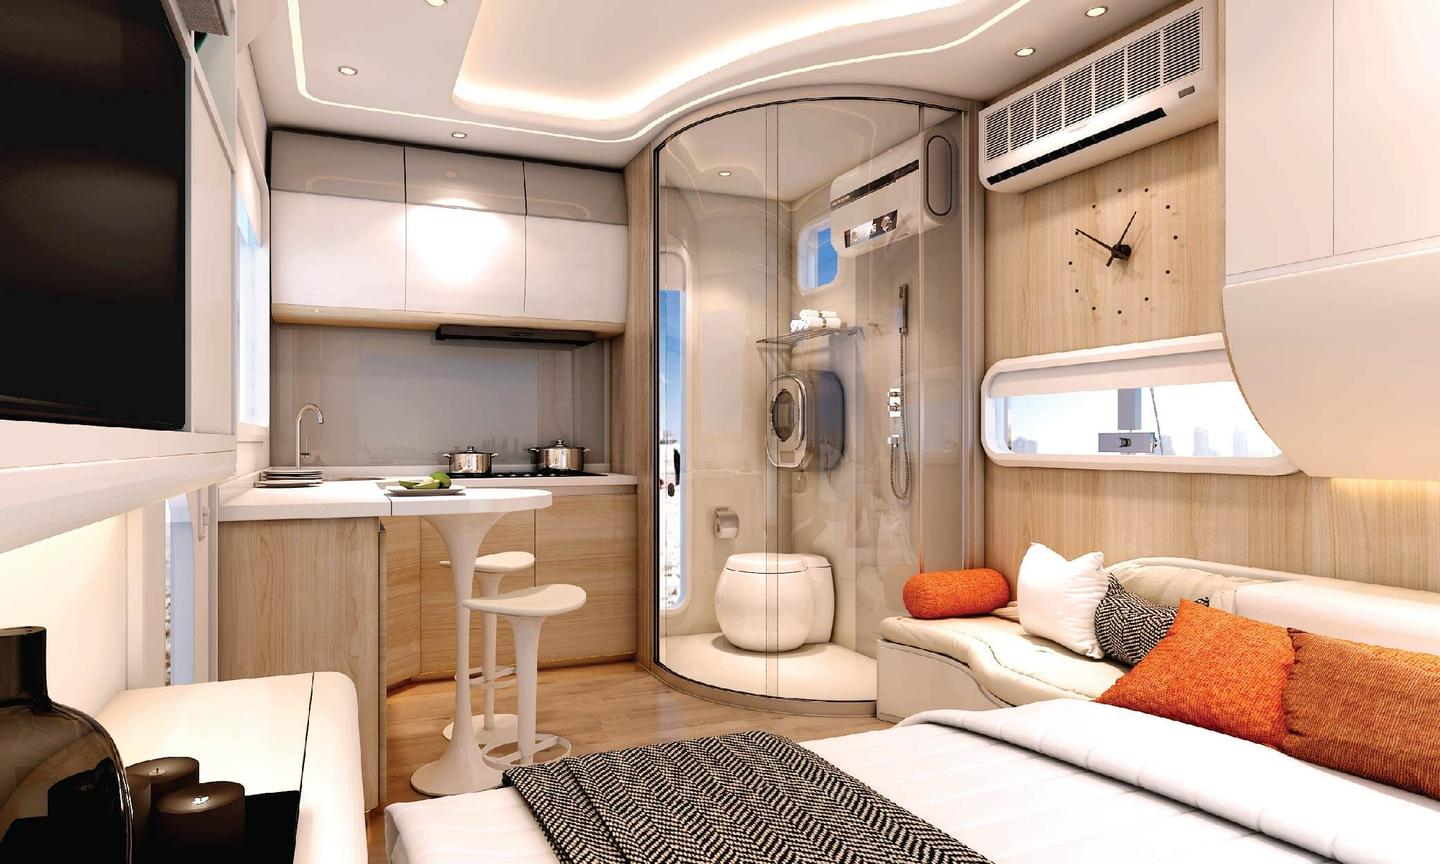 Cube One is a prefabricated single room home that is ready to move-in from delivery